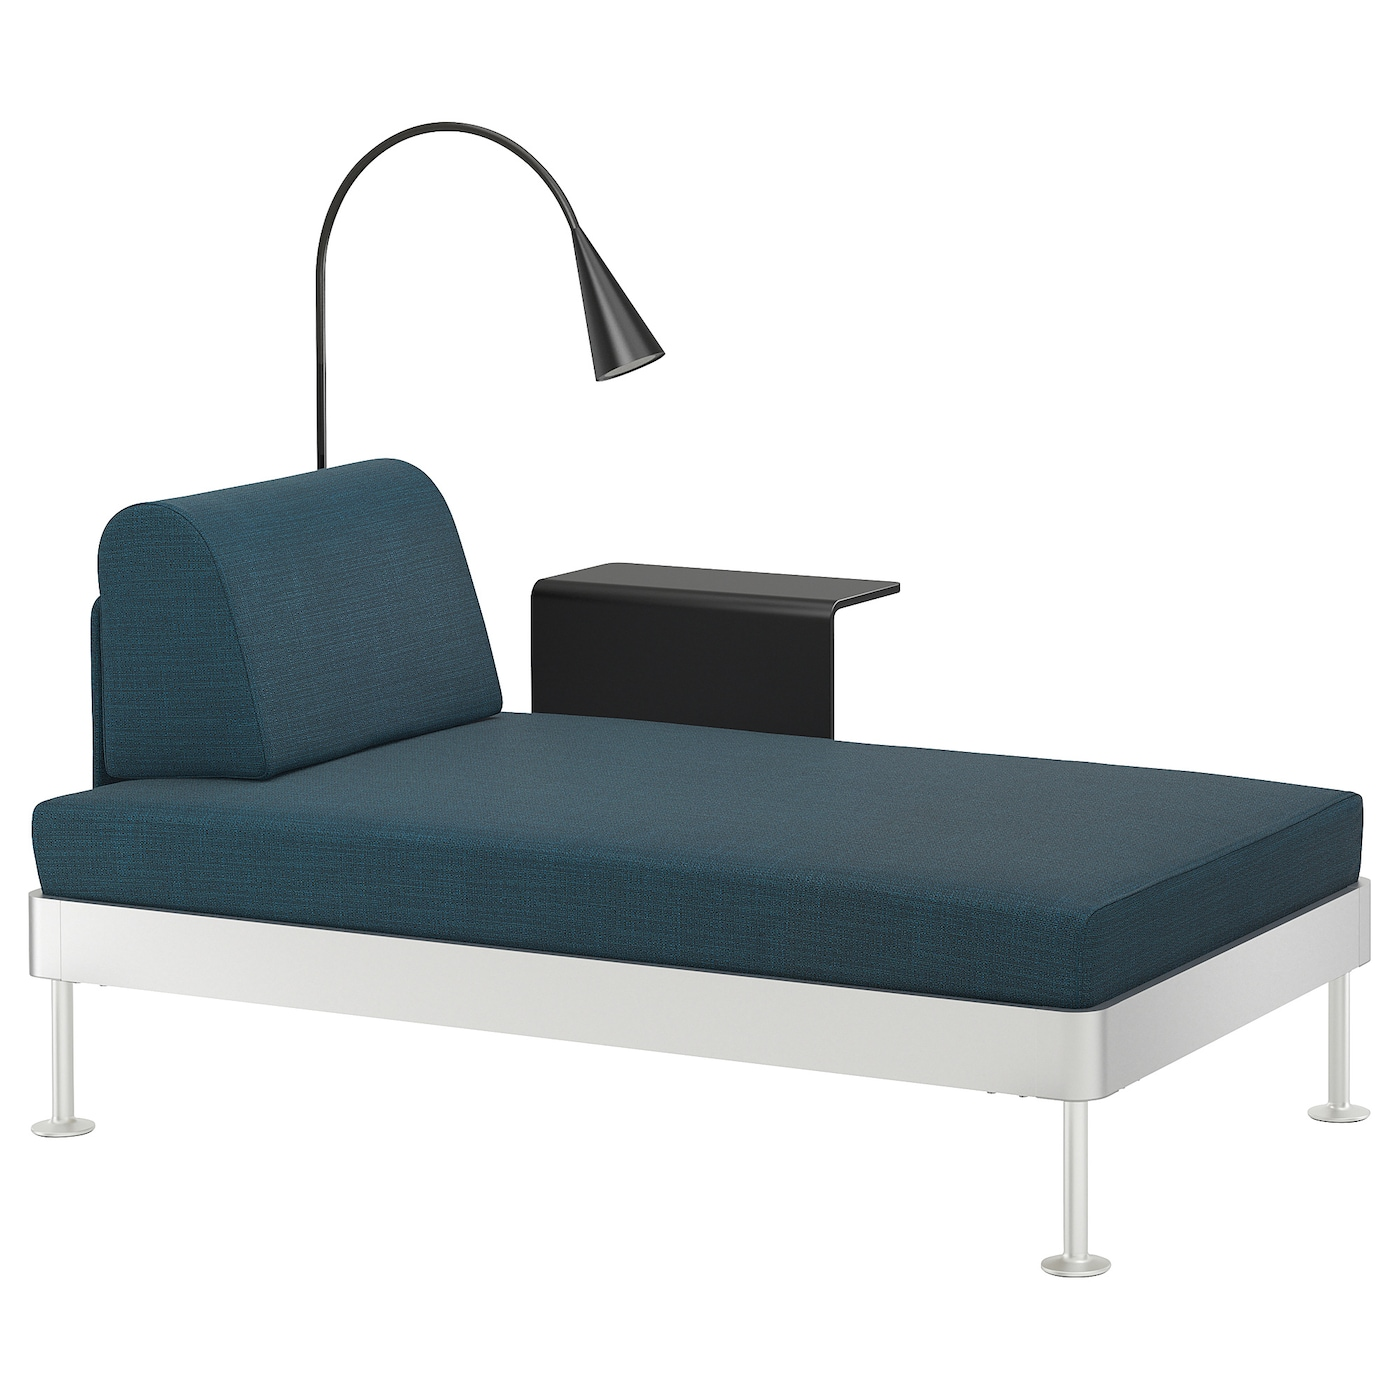 Delaktig chaise longue w side table and lamp hillared dark for Chaise longue 5 plazas